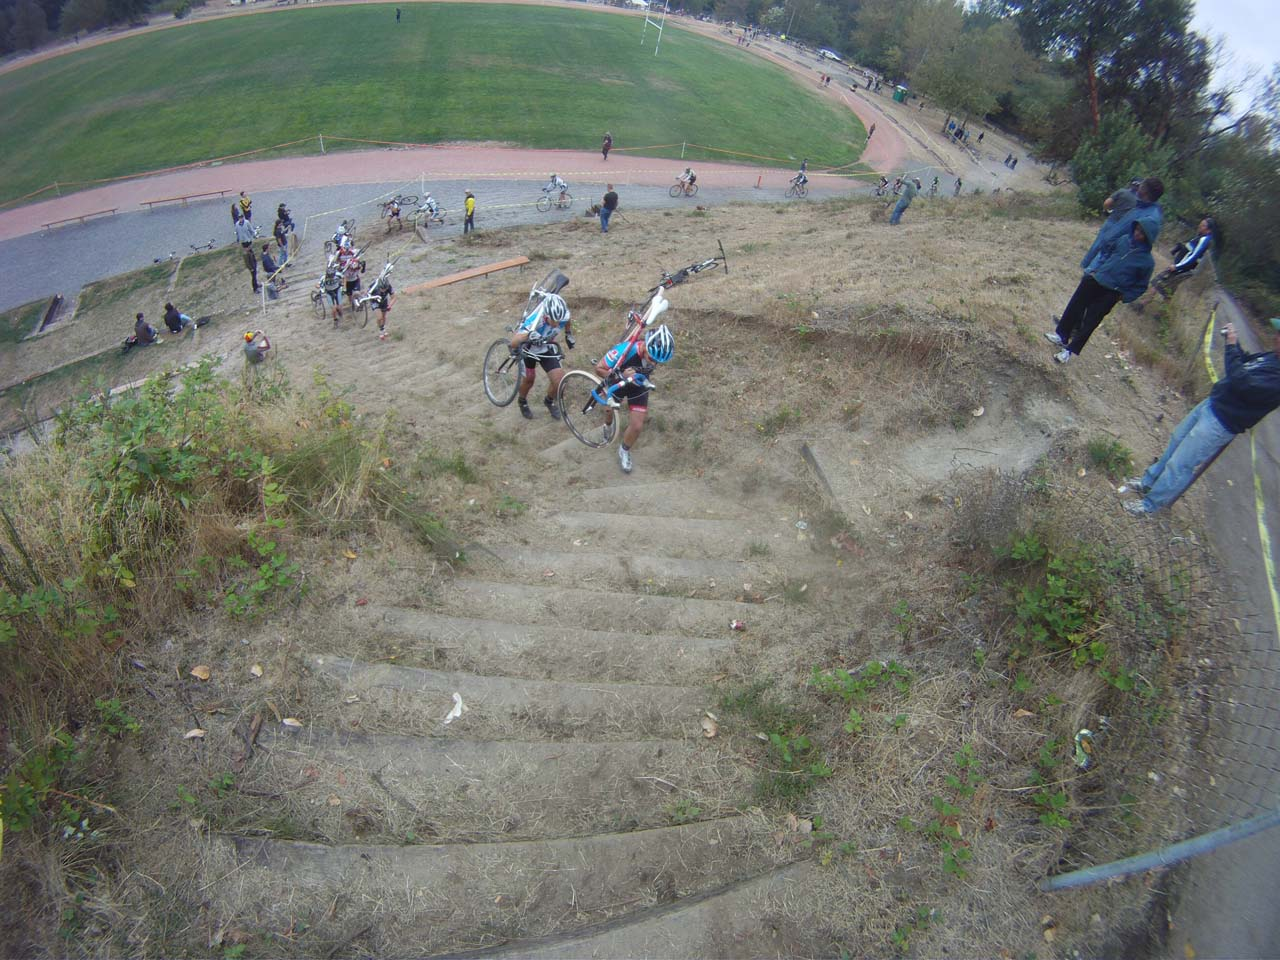 Chad Berg leads the 1/2 Masters field up the stairs